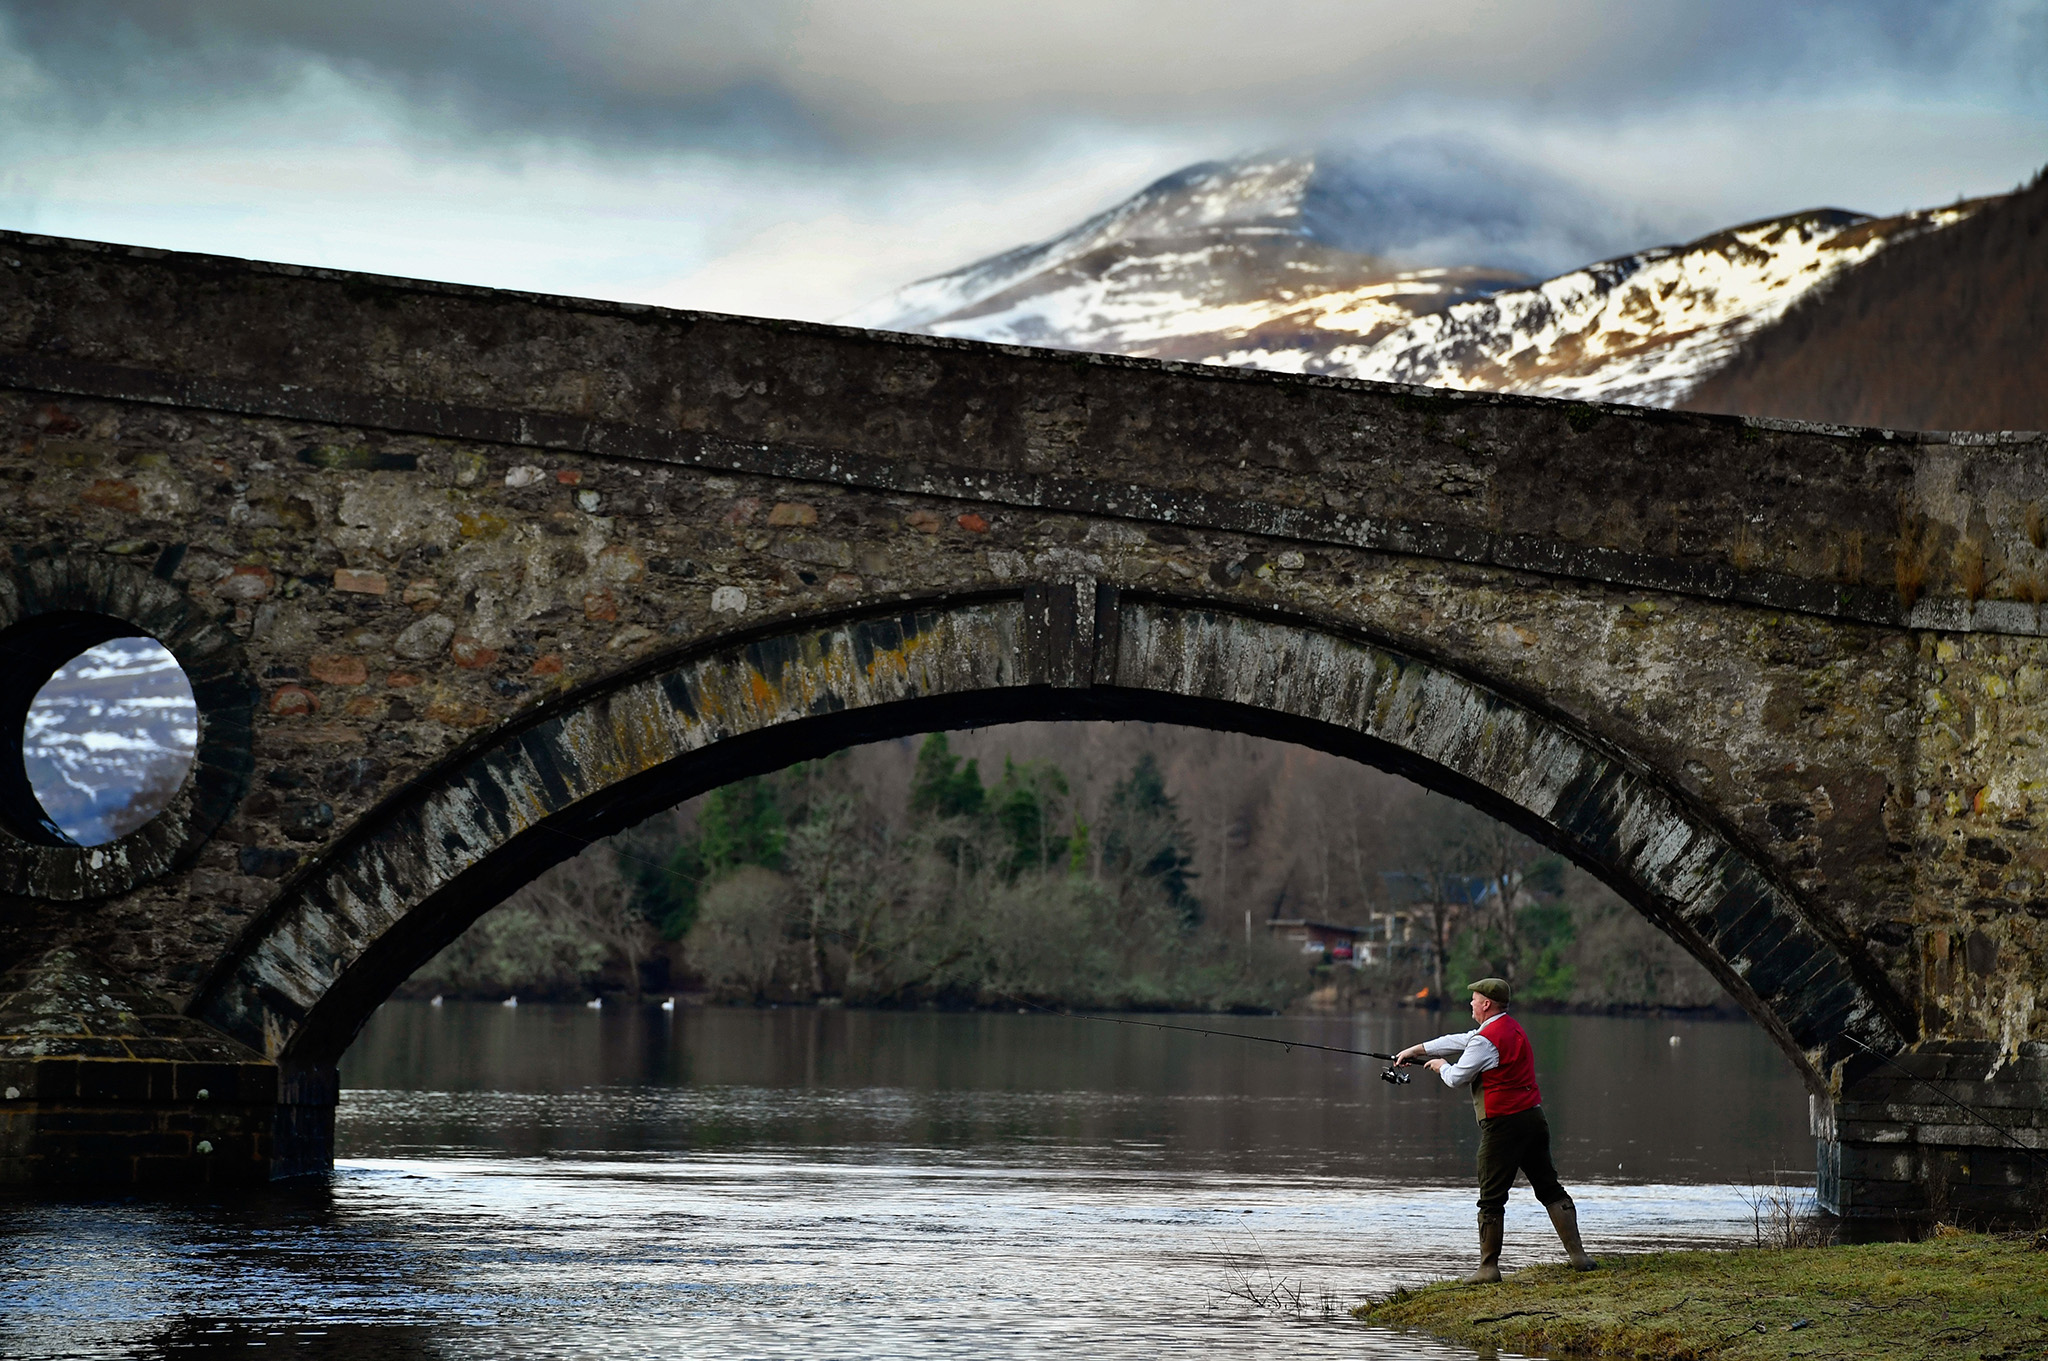 Angelers gather at the River Tay for the opening of the Salmon Fishing season on January 16, 2017 in Kenmore, Scotland. The village of Kenmore has been the traditional venue for the opening of the season since 1947, with this year marking the 70th anniversary.  (Photo by Jeff J Mitchell/Getty Images)